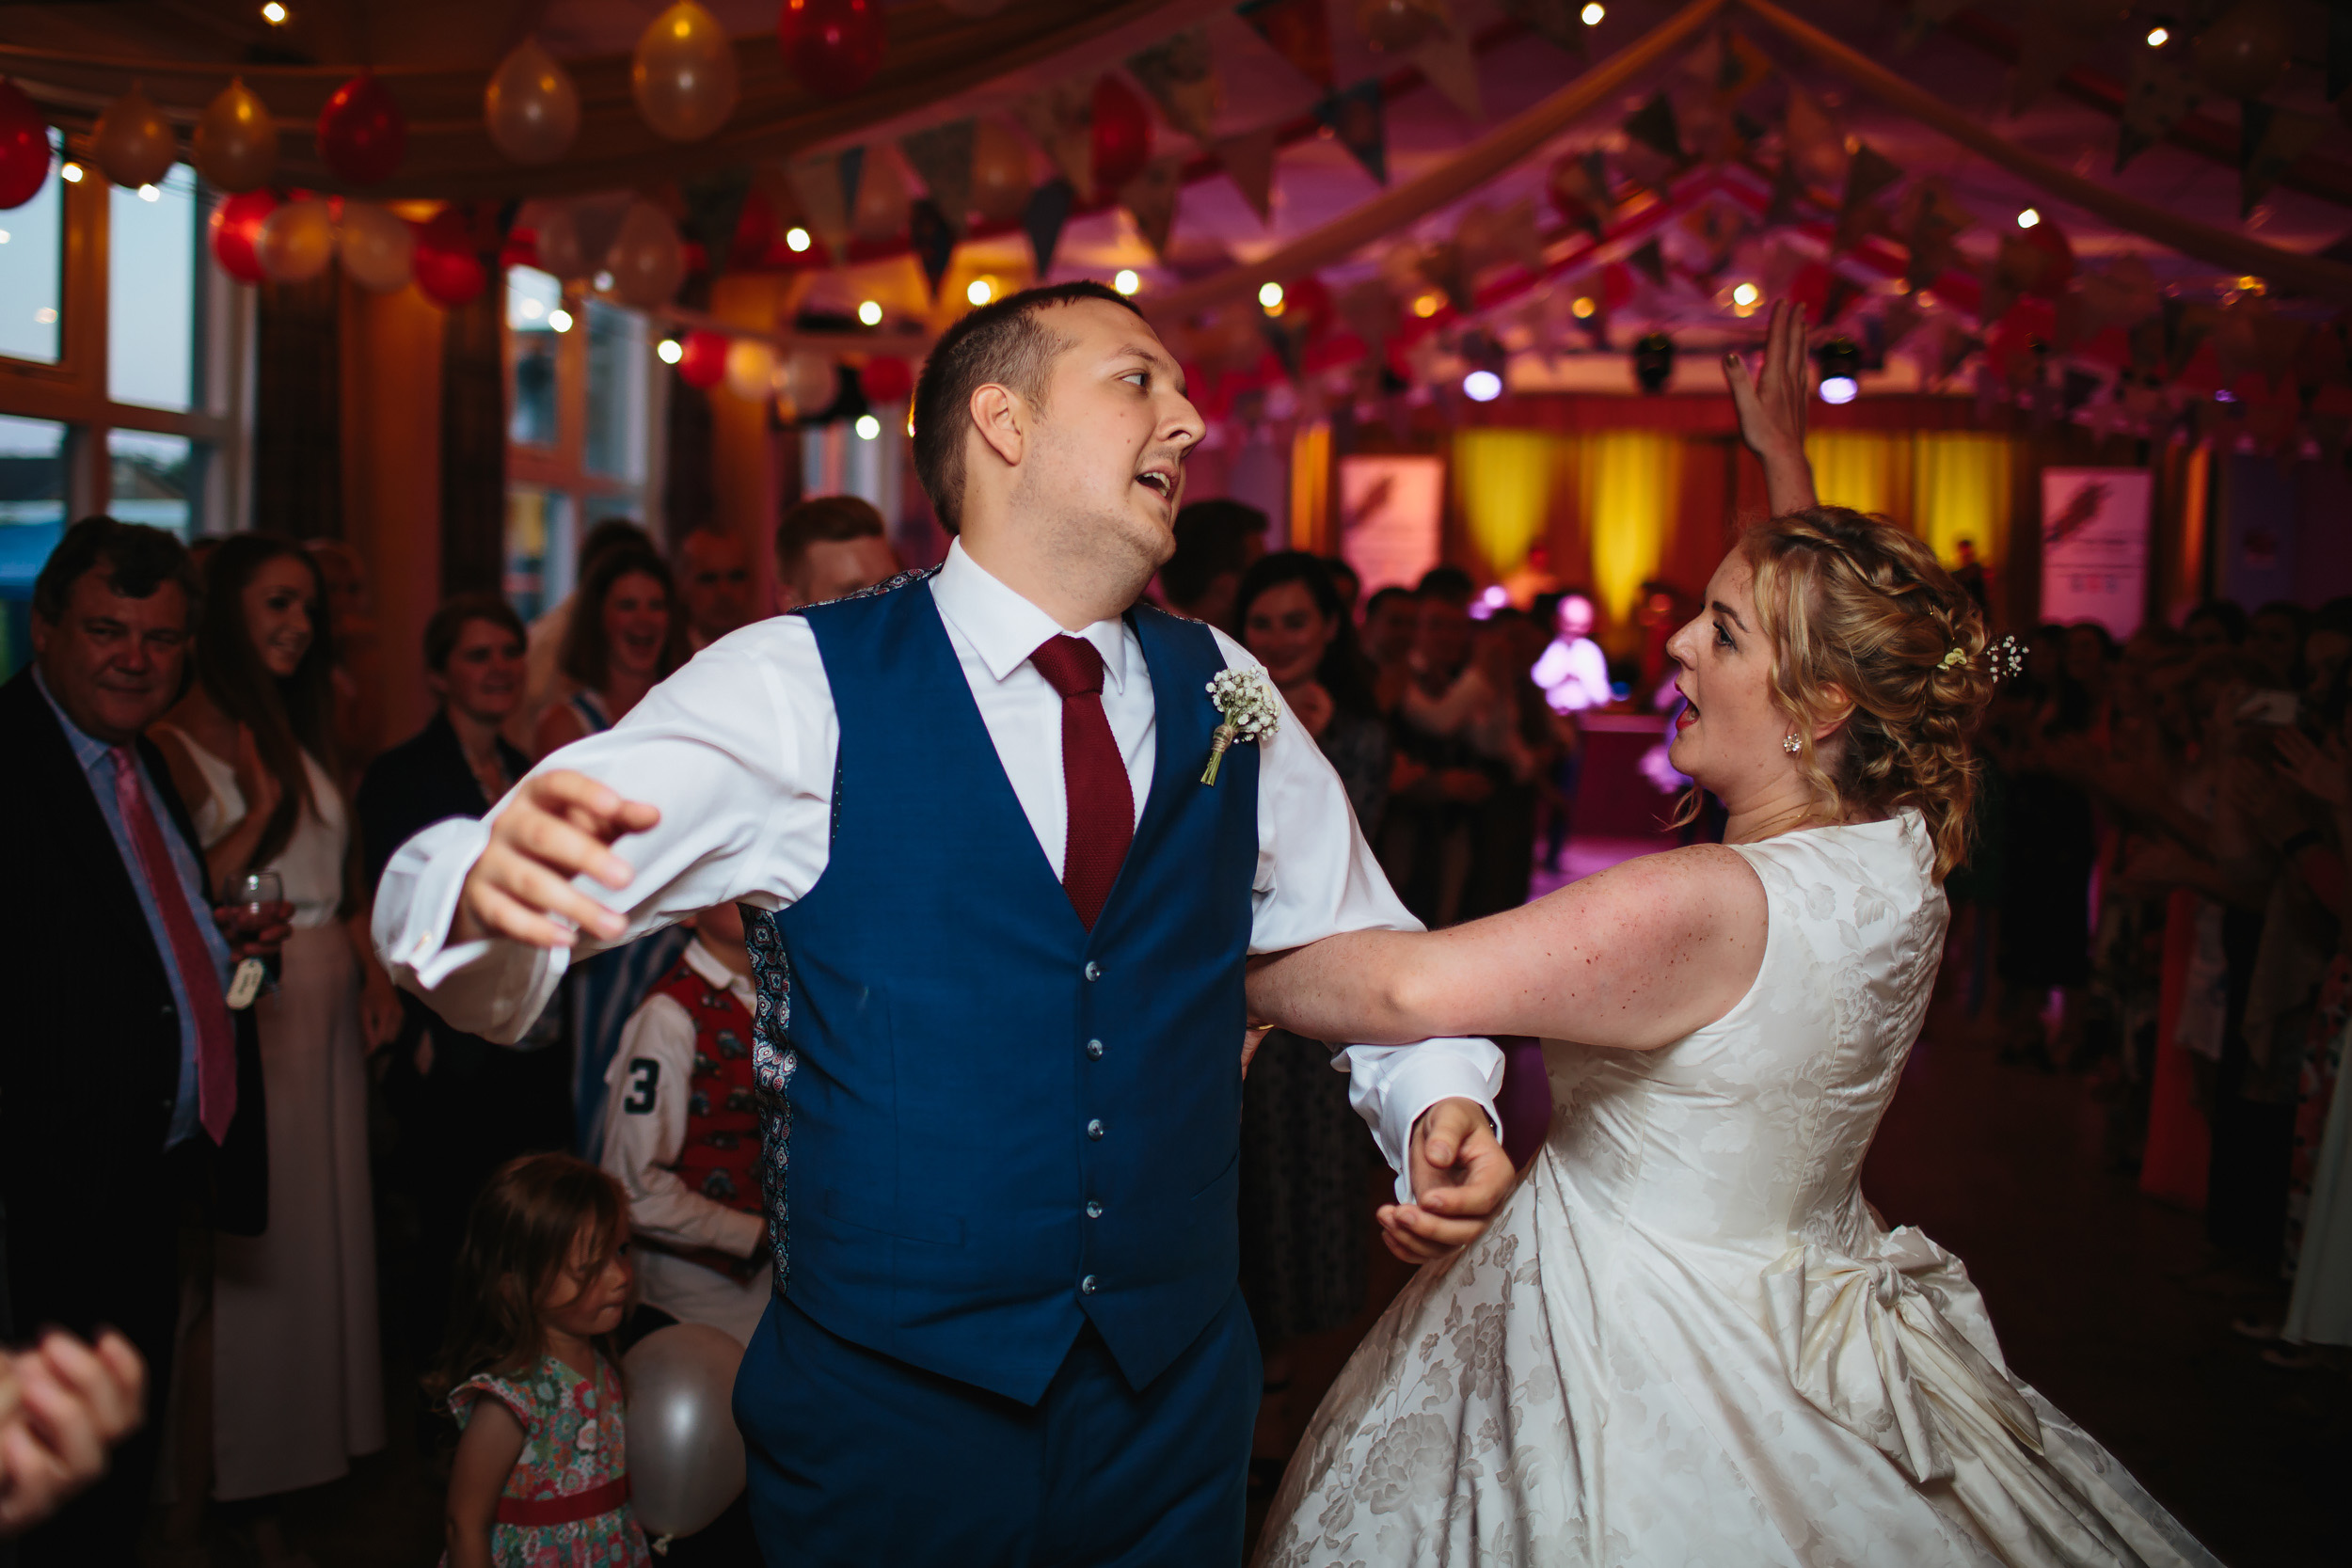 Bride and groom dancing at their wedding in Lancashire